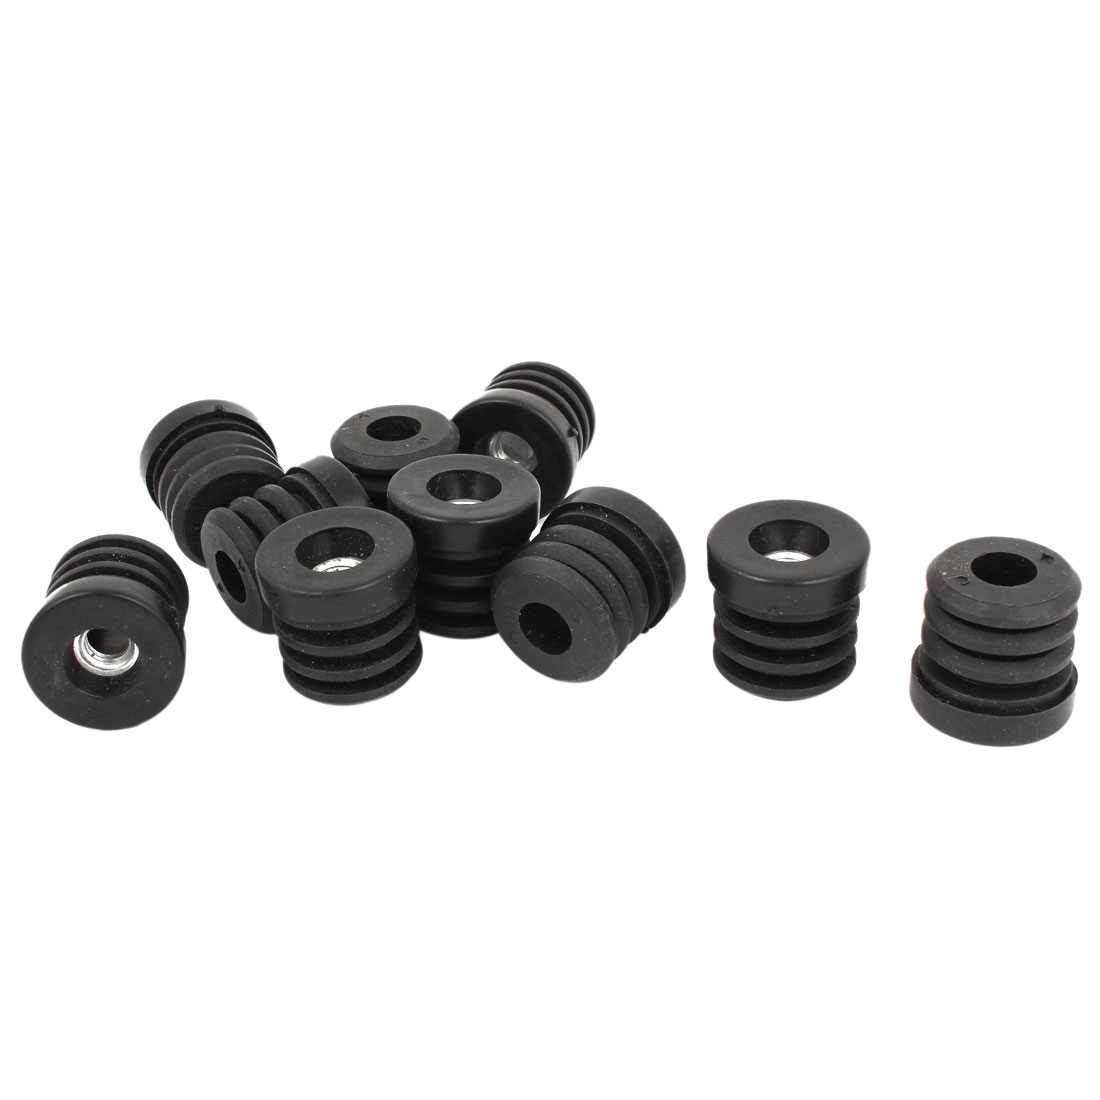 "10 Pcs M8 Threaded Insert Black for 25mm 1"" Round Box Section Tube Pipe"